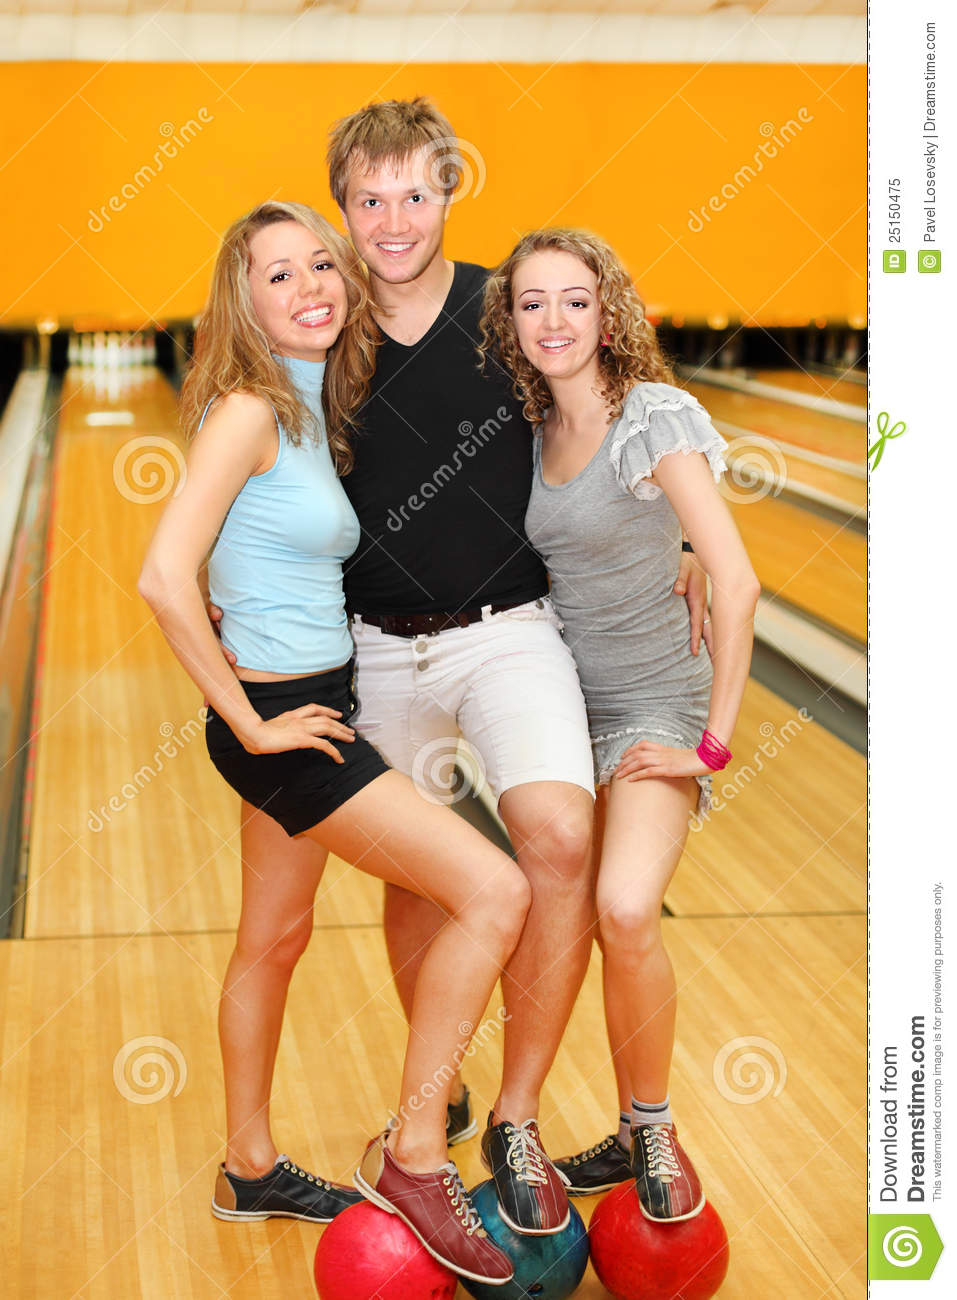 Man And Girls Put Feet On Balls In Bowling Club Stock